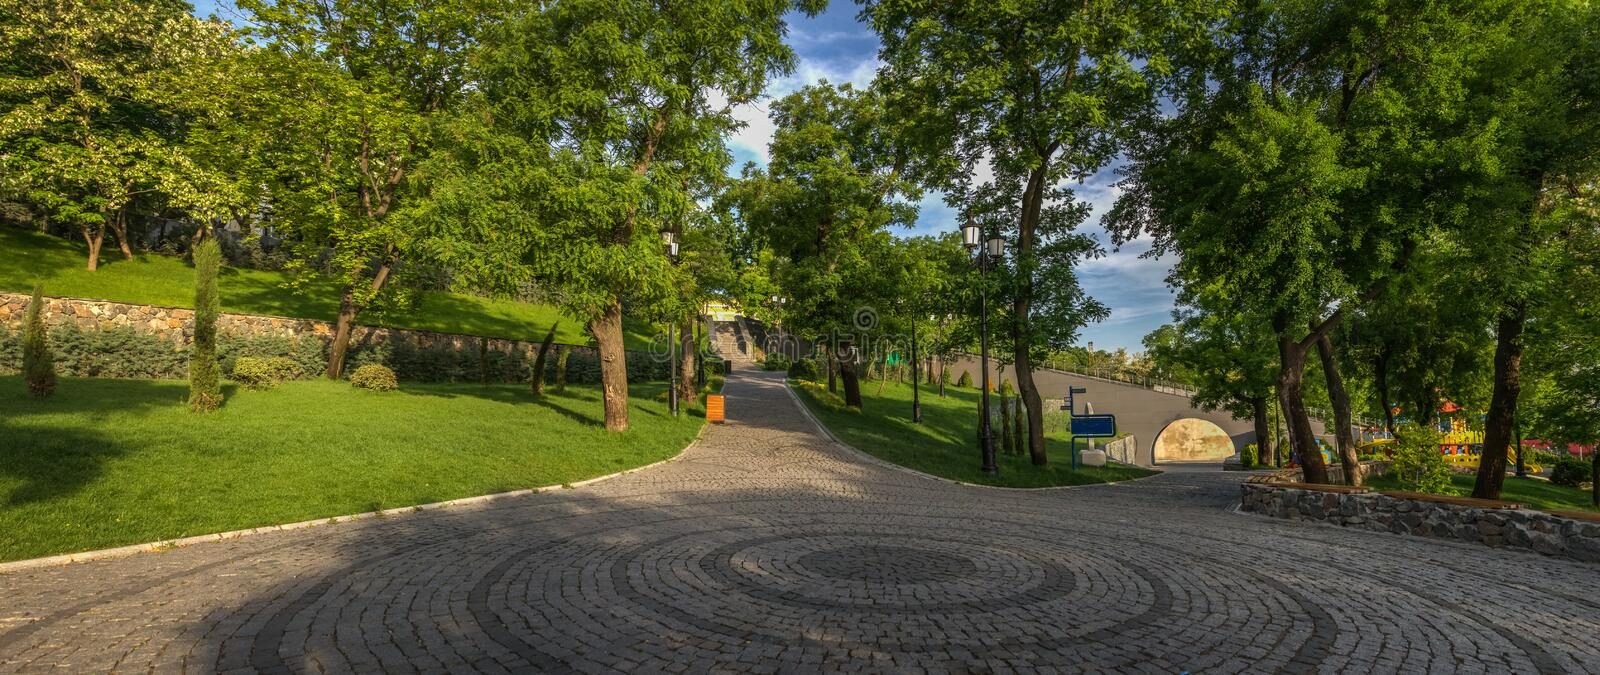 Istambul Park in Odessa, Ukraine royalty free stock photo